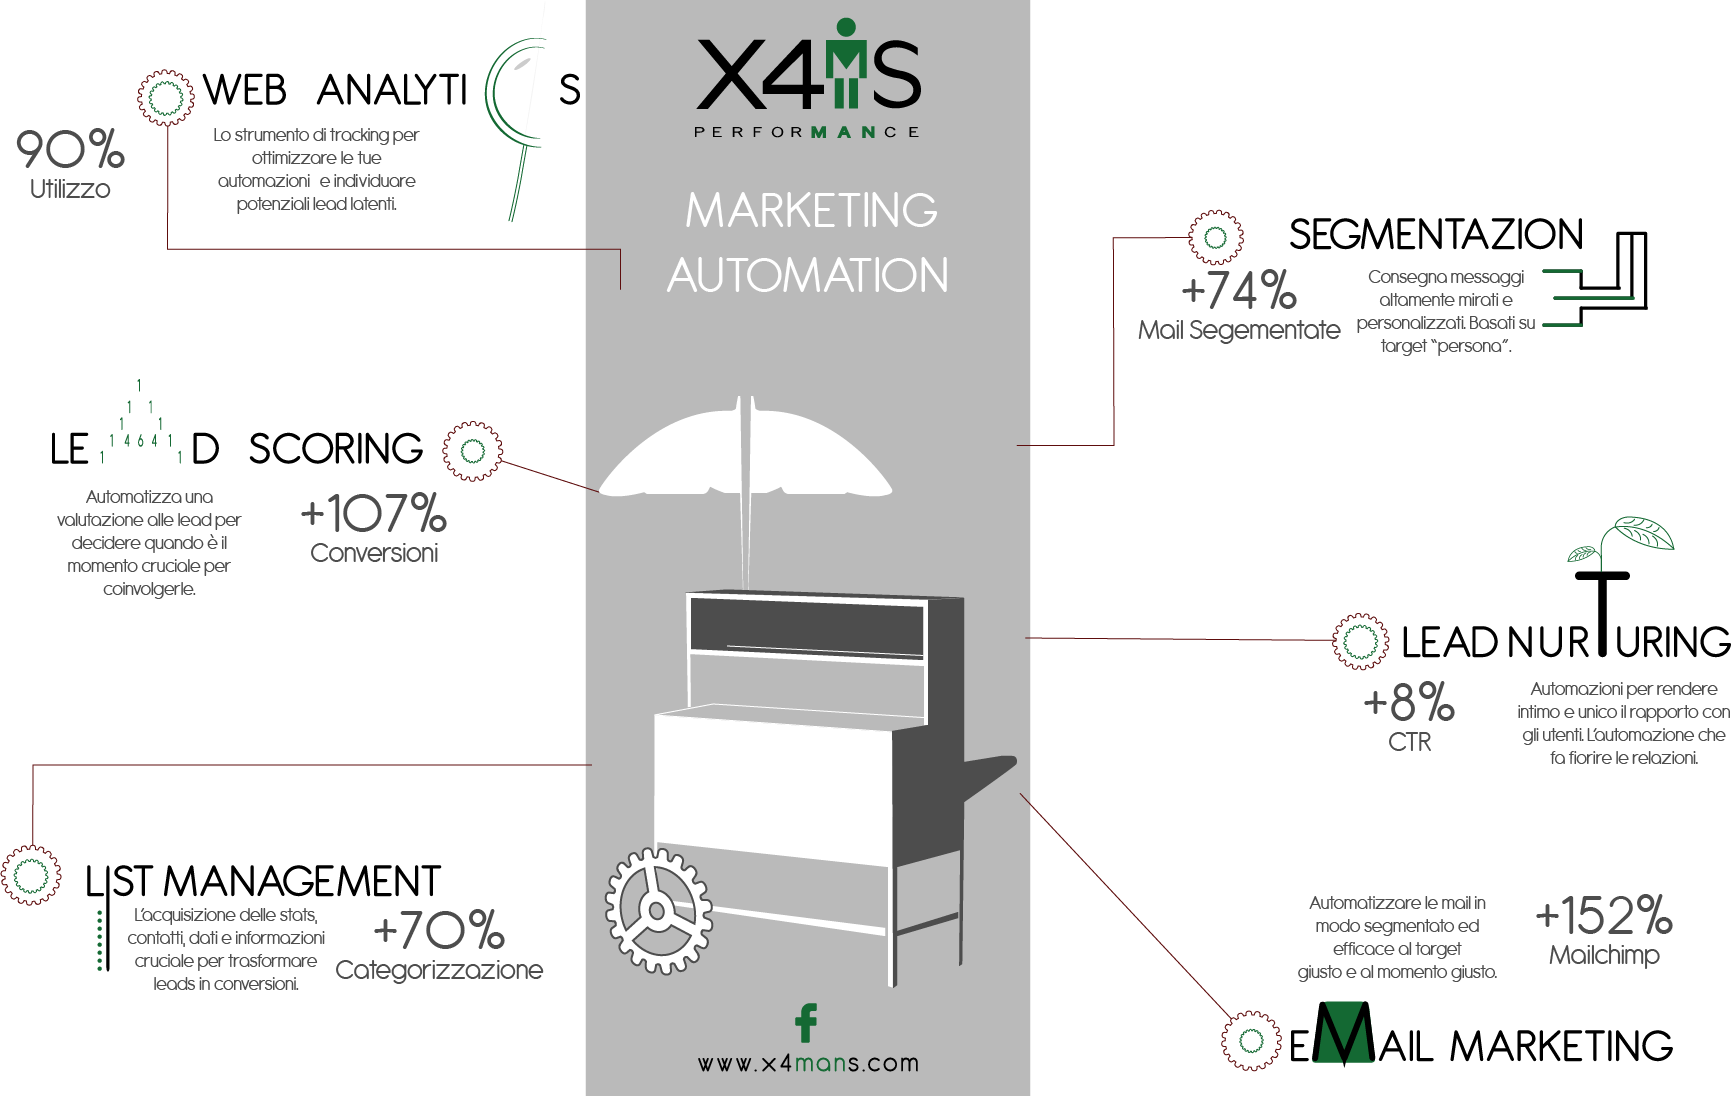 Marketing Automation - X4ManS